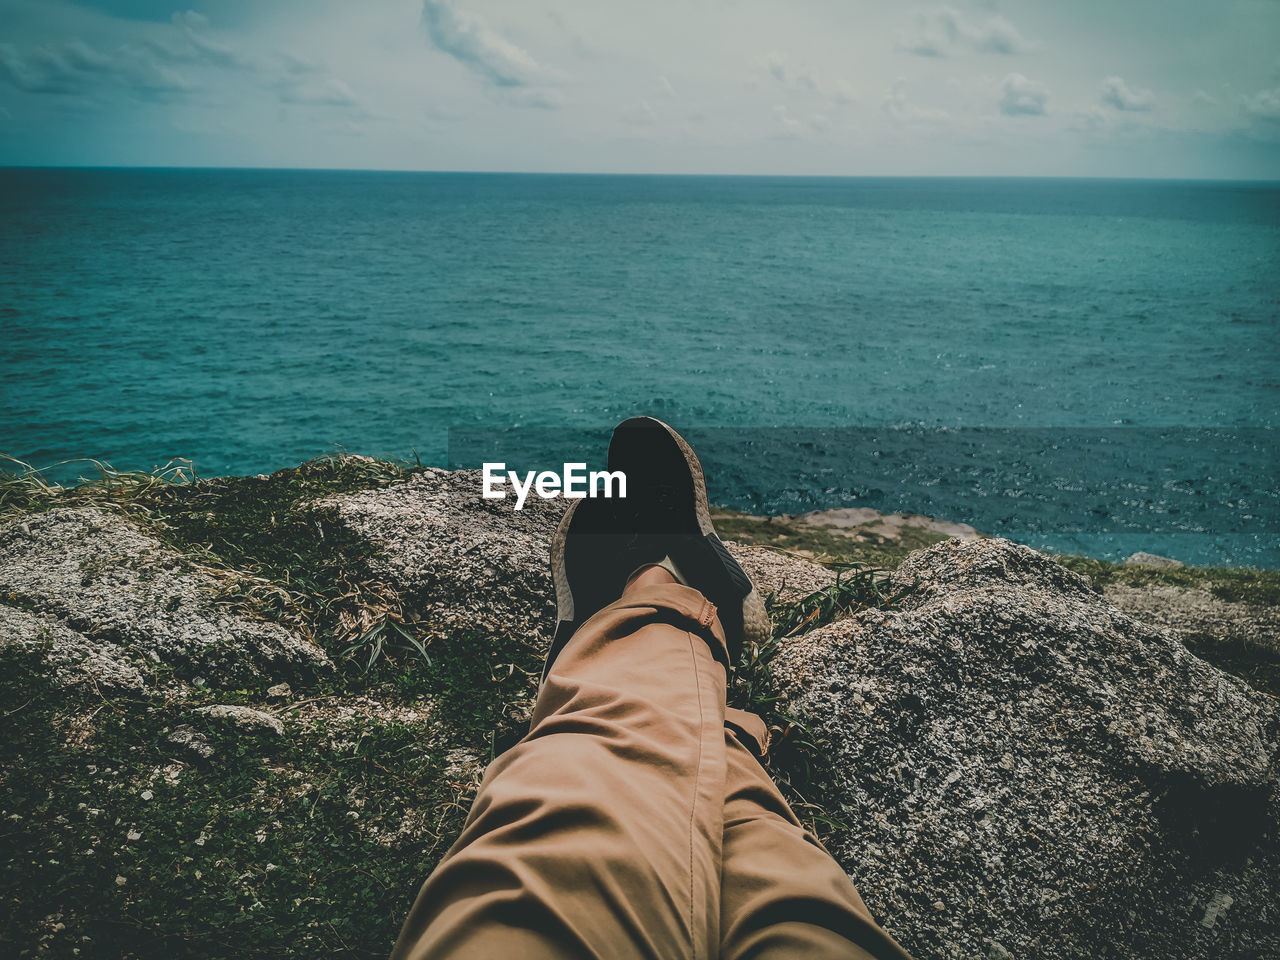 sea, water, personal perspective, low section, horizon, one person, human leg, horizon over water, real people, leisure activity, beauty in nature, nature, rock, relaxation, body part, solid, scenics - nature, rock - object, day, outdoors, jeans